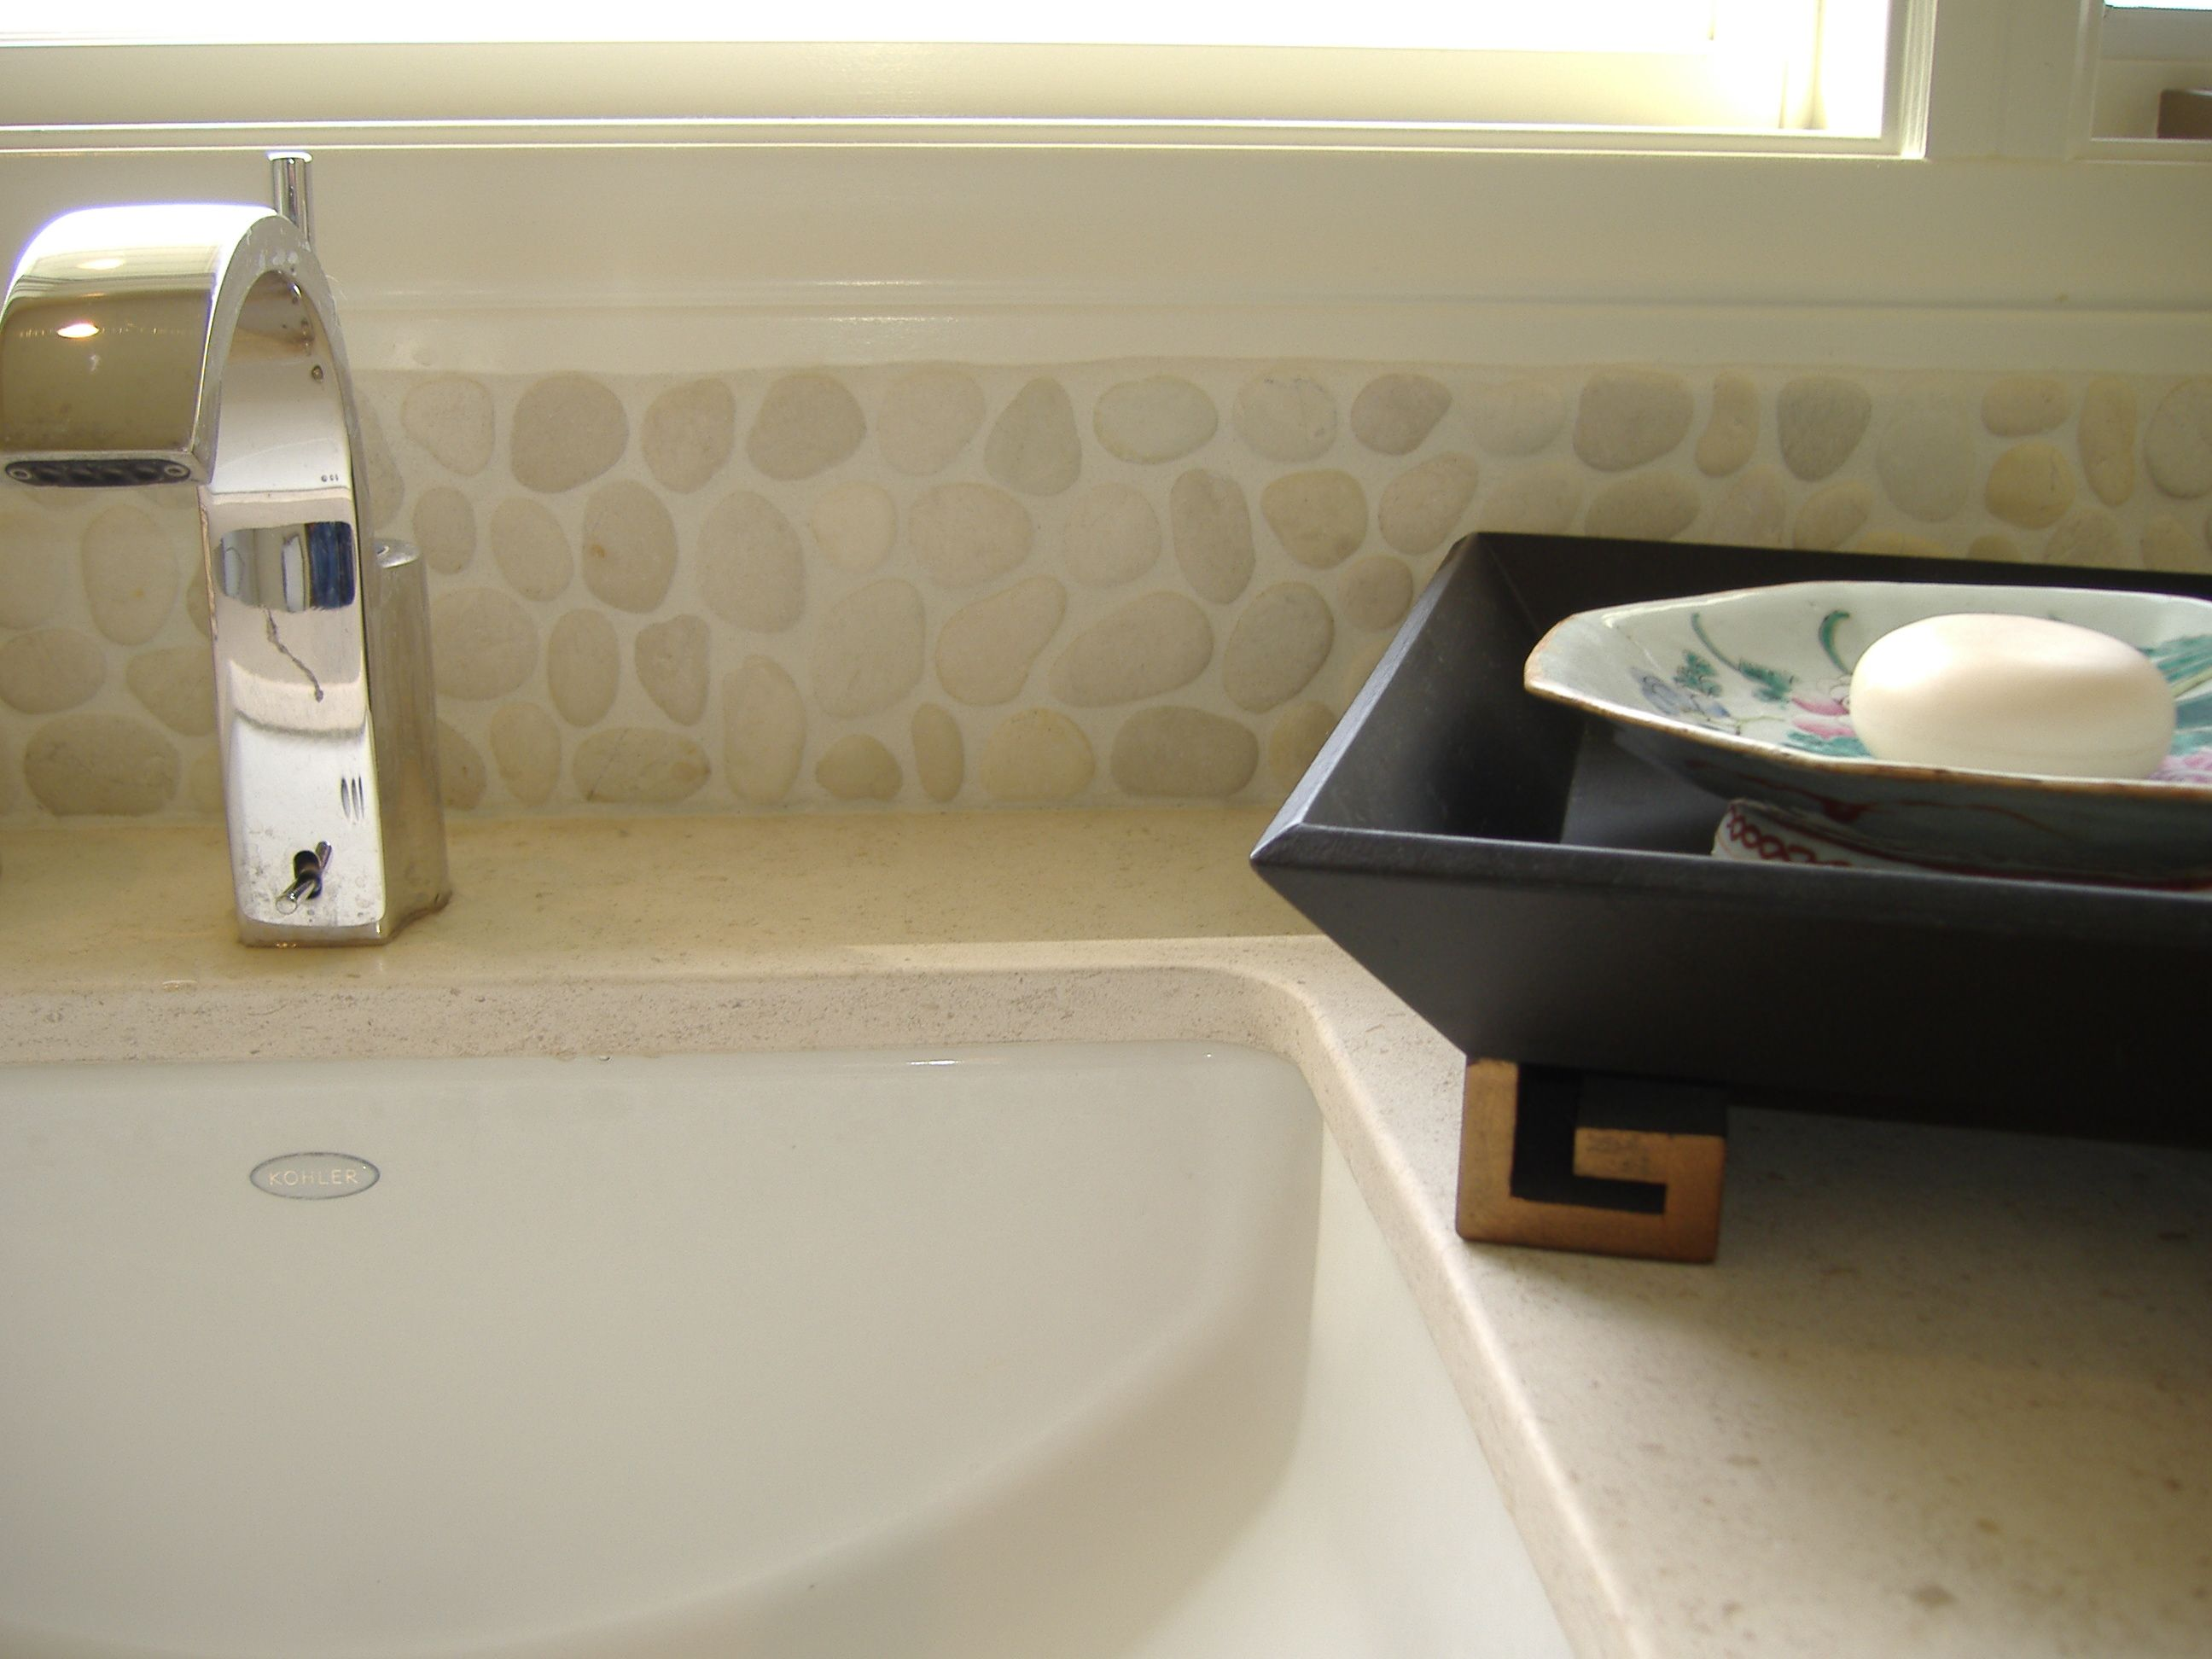 White Pebble Tile, bathroom backsplash, Zen Paradise, Inc ...